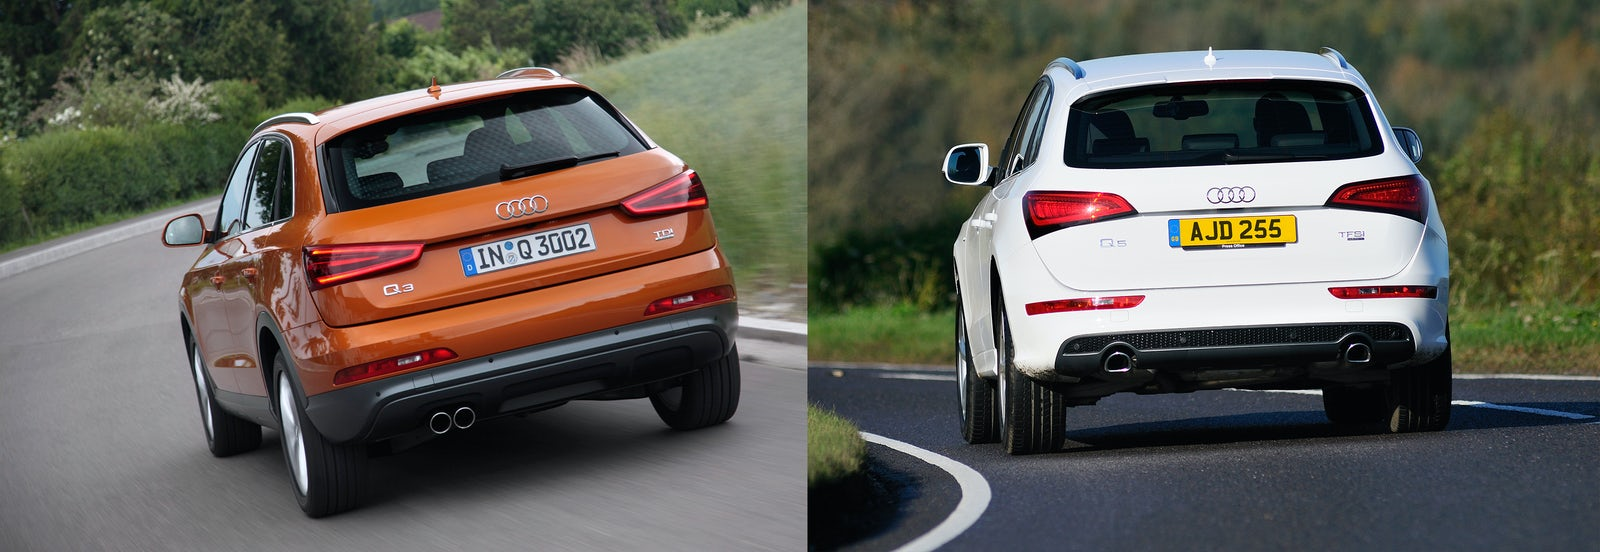 Audi Q Vs Audi Q Sidebyside UK Comparison Carwow - Audi q5 family car